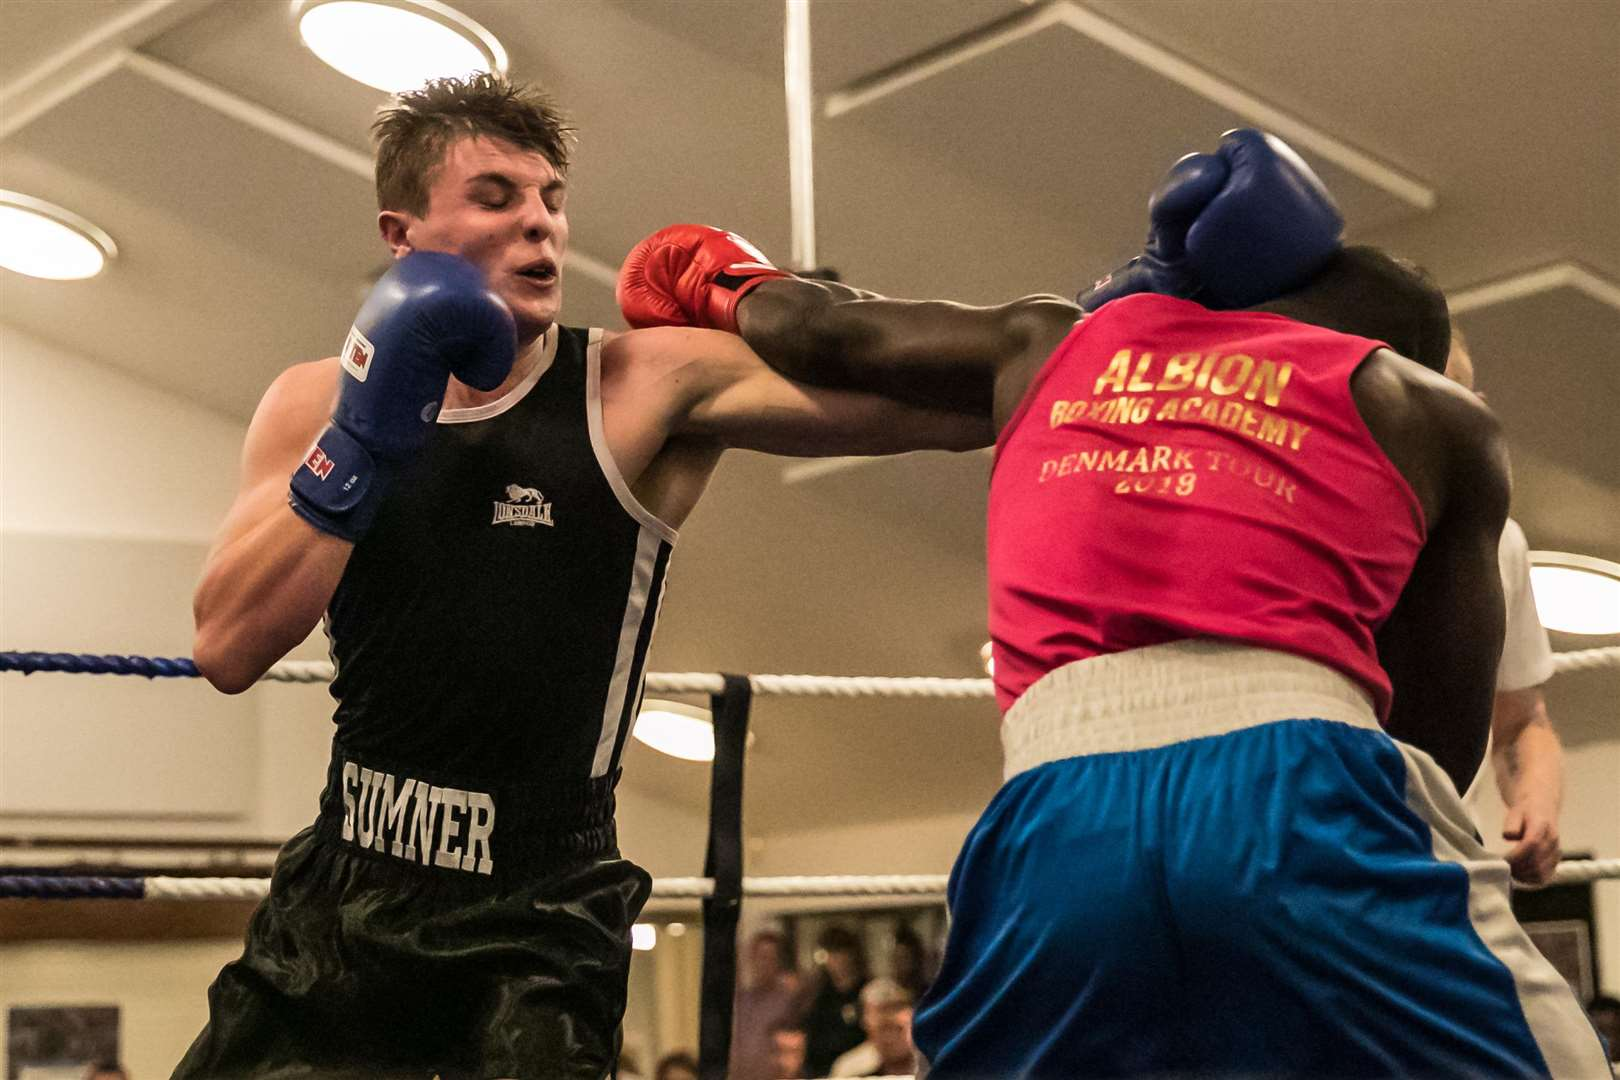 Boxing - Sudbury ABC Home Show. Pictured Jake Summer, Bout 20 - (Red) Gianni Antoh (Albion) v (Sudbury) Jake Summer (Blue) Picture - Paul Tebbutt. (4927071)